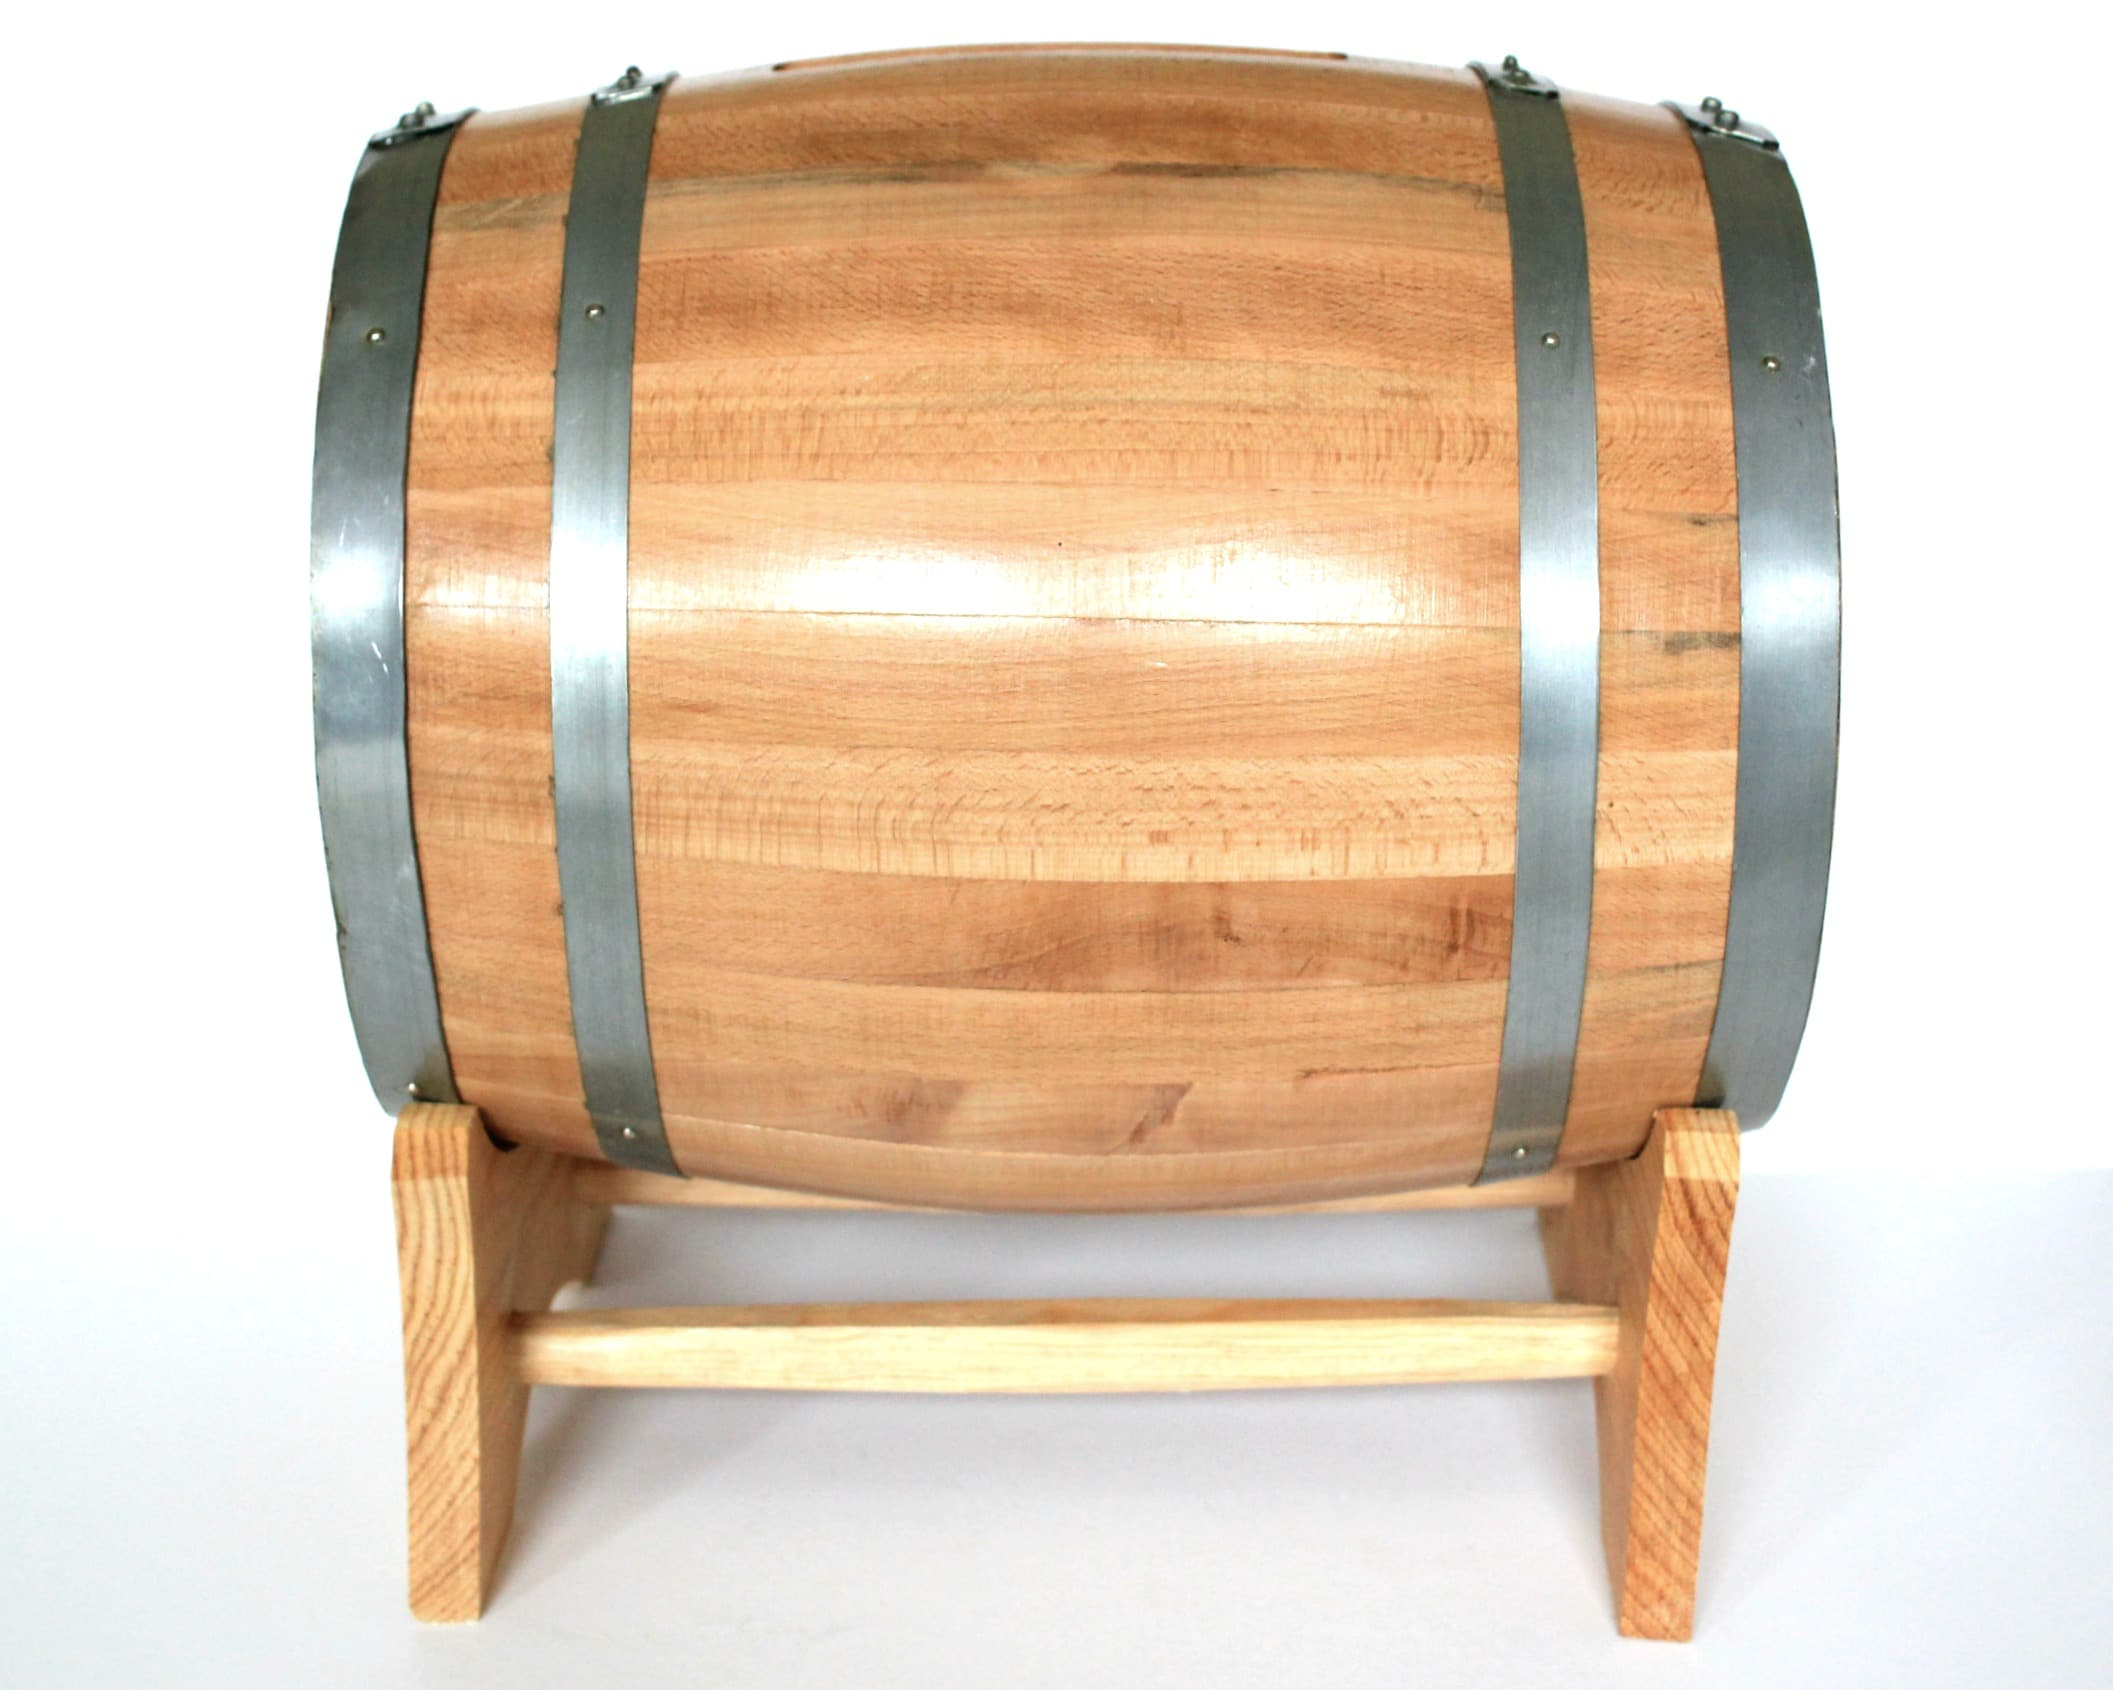 Side view of Wine Barrel Card Holder and Stand